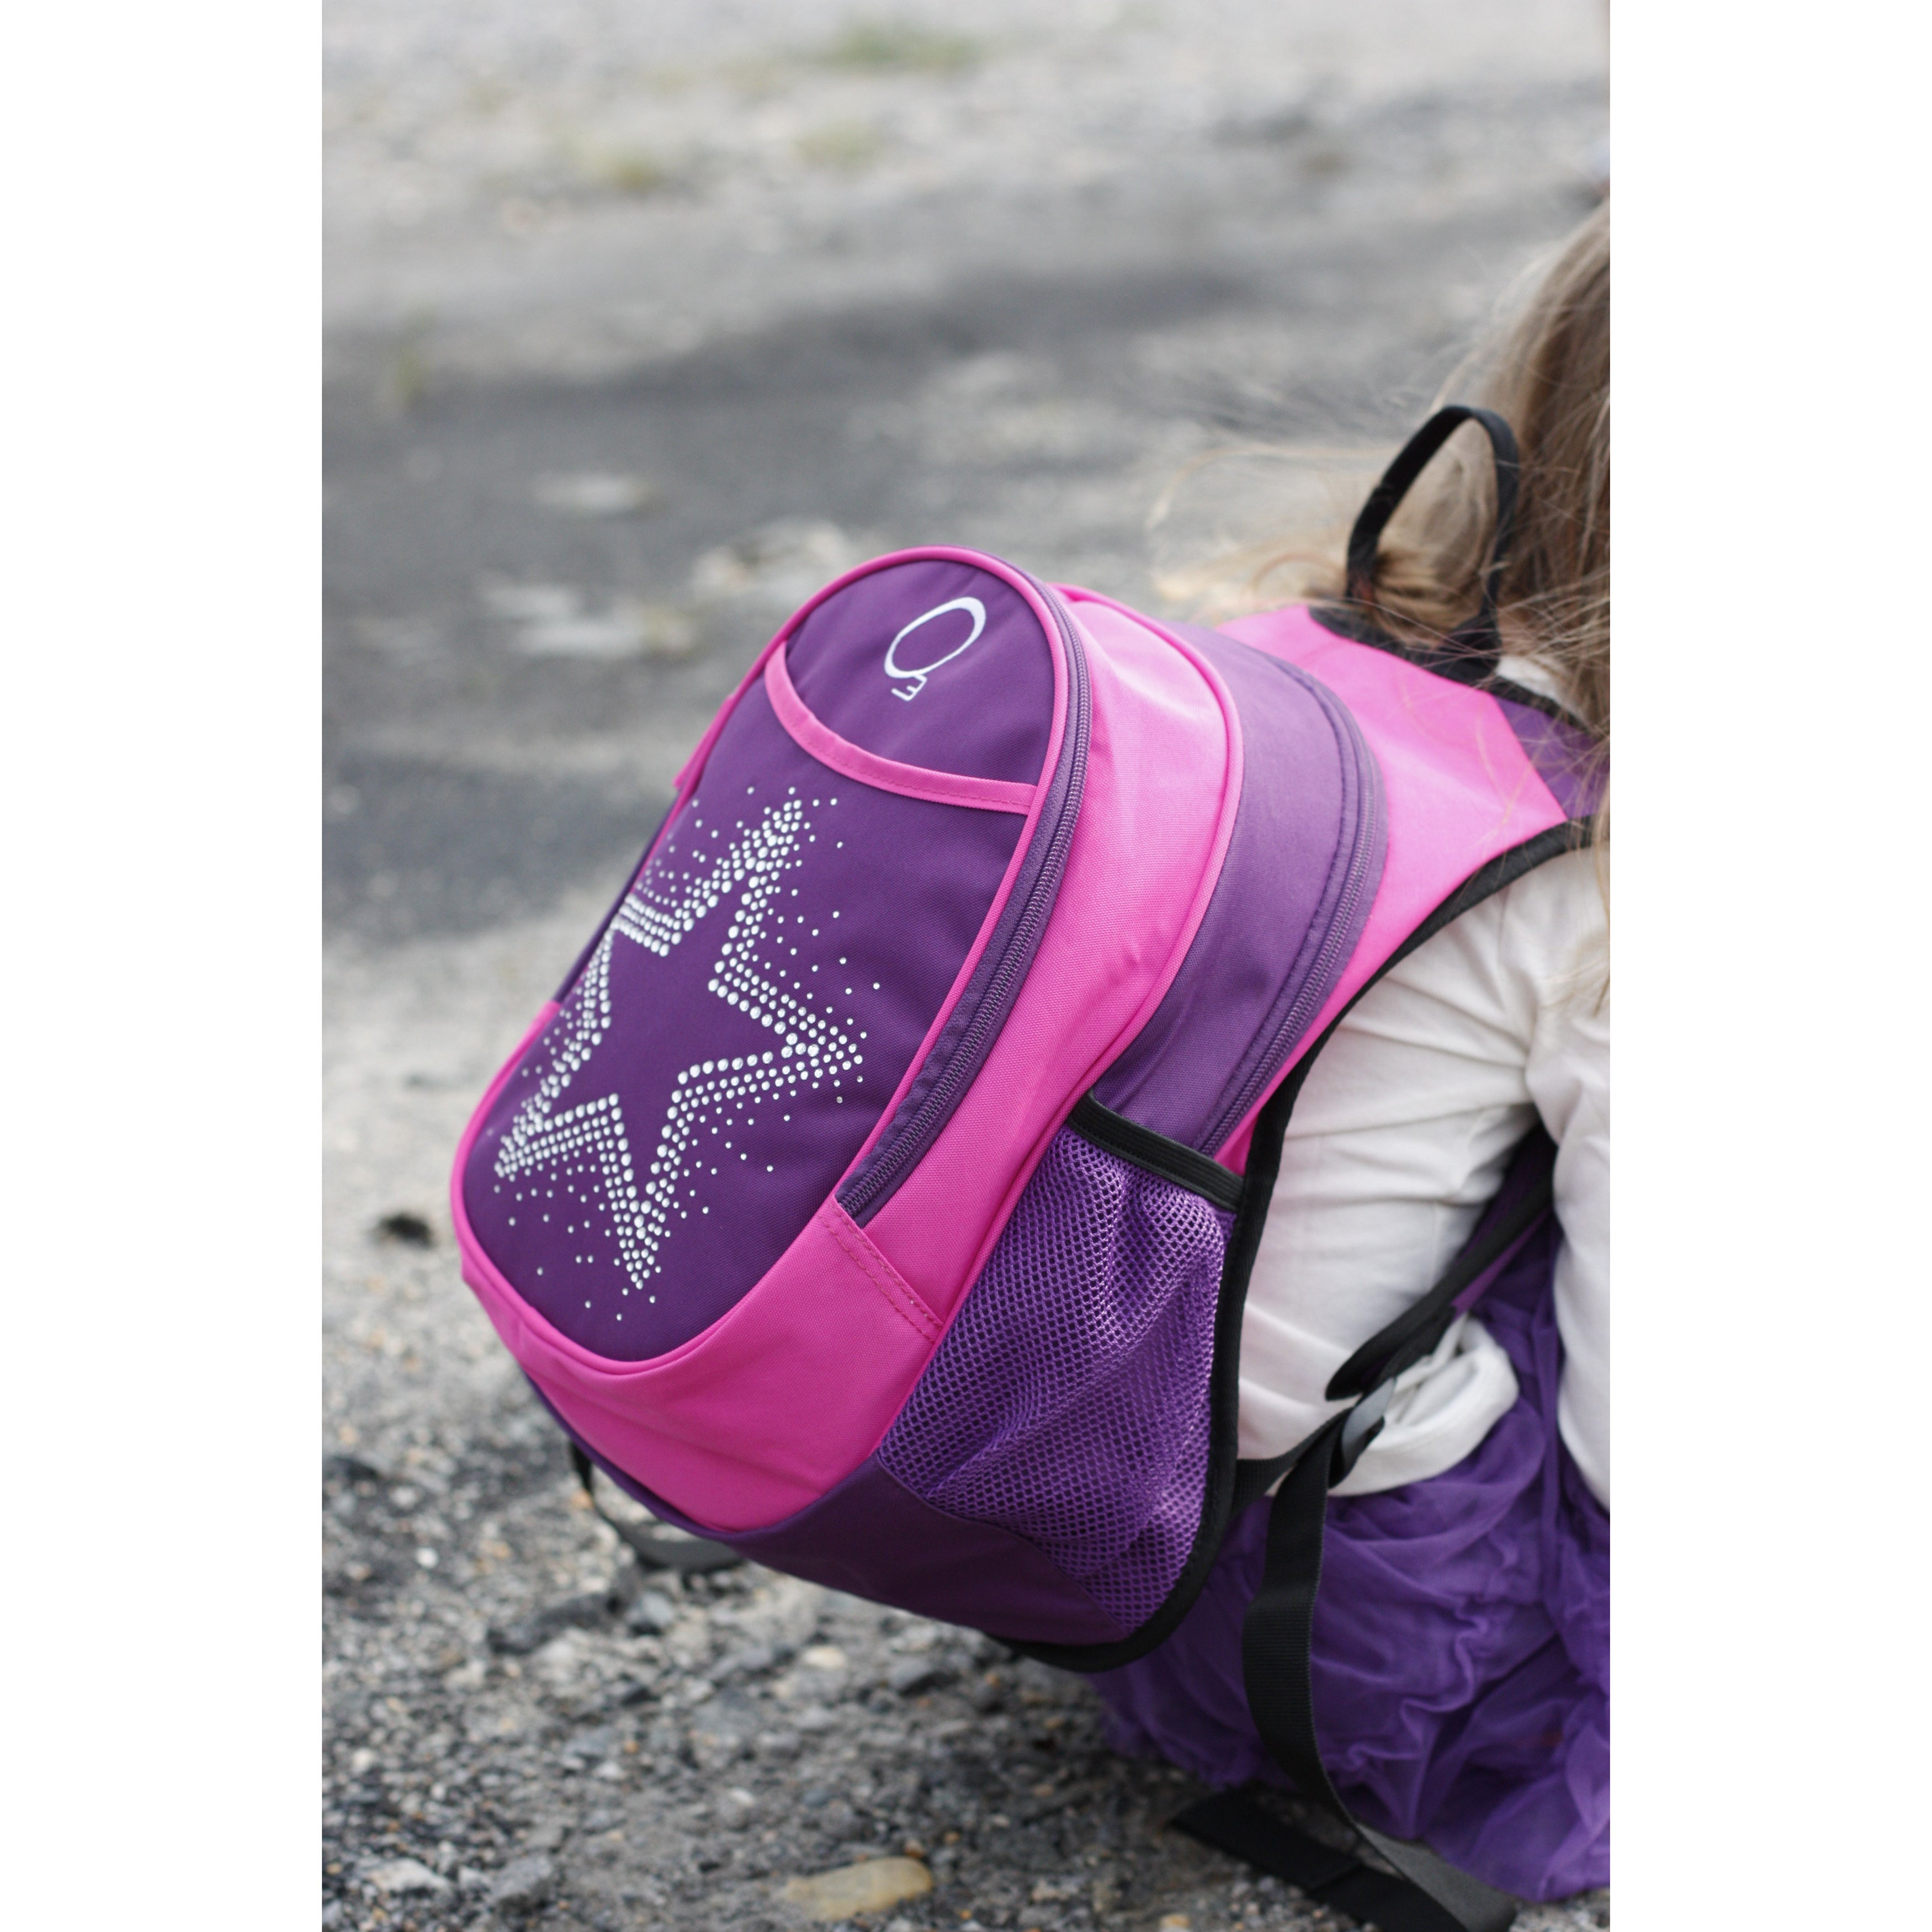 a7e704b4a02f Shop Obersee Kids Pre-School All-In-One Backpack With Cooler - Star - Free  Shipping On Orders Over  45 - Overstock - 6975408